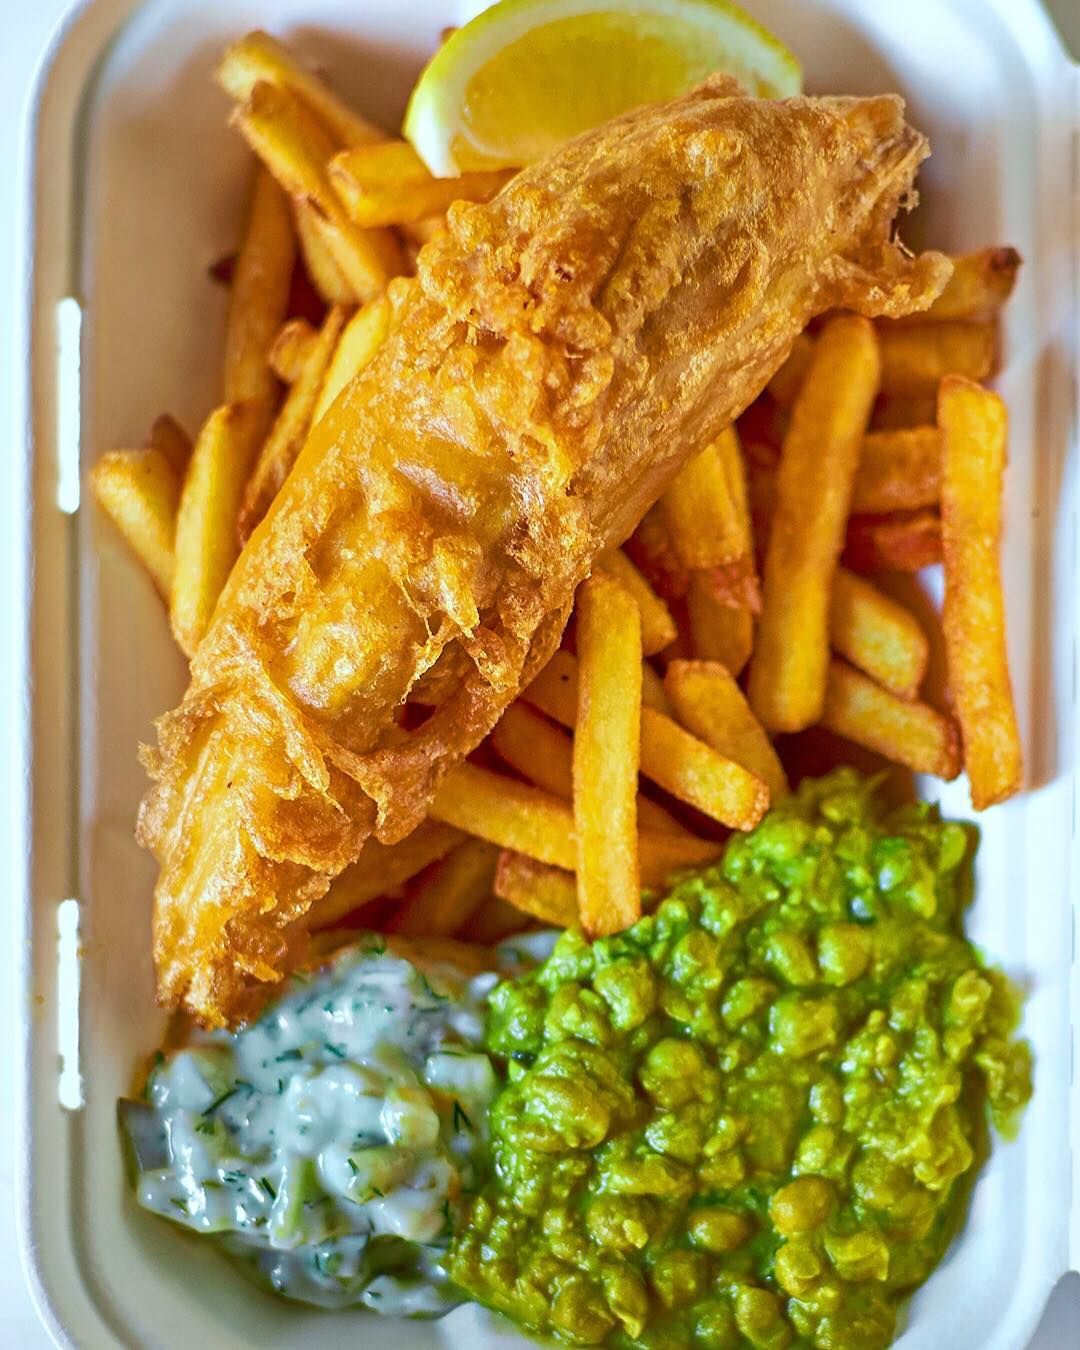 Vegan Fish Chips Vegan Fish And Chips Vegan Fish Fish And Chips